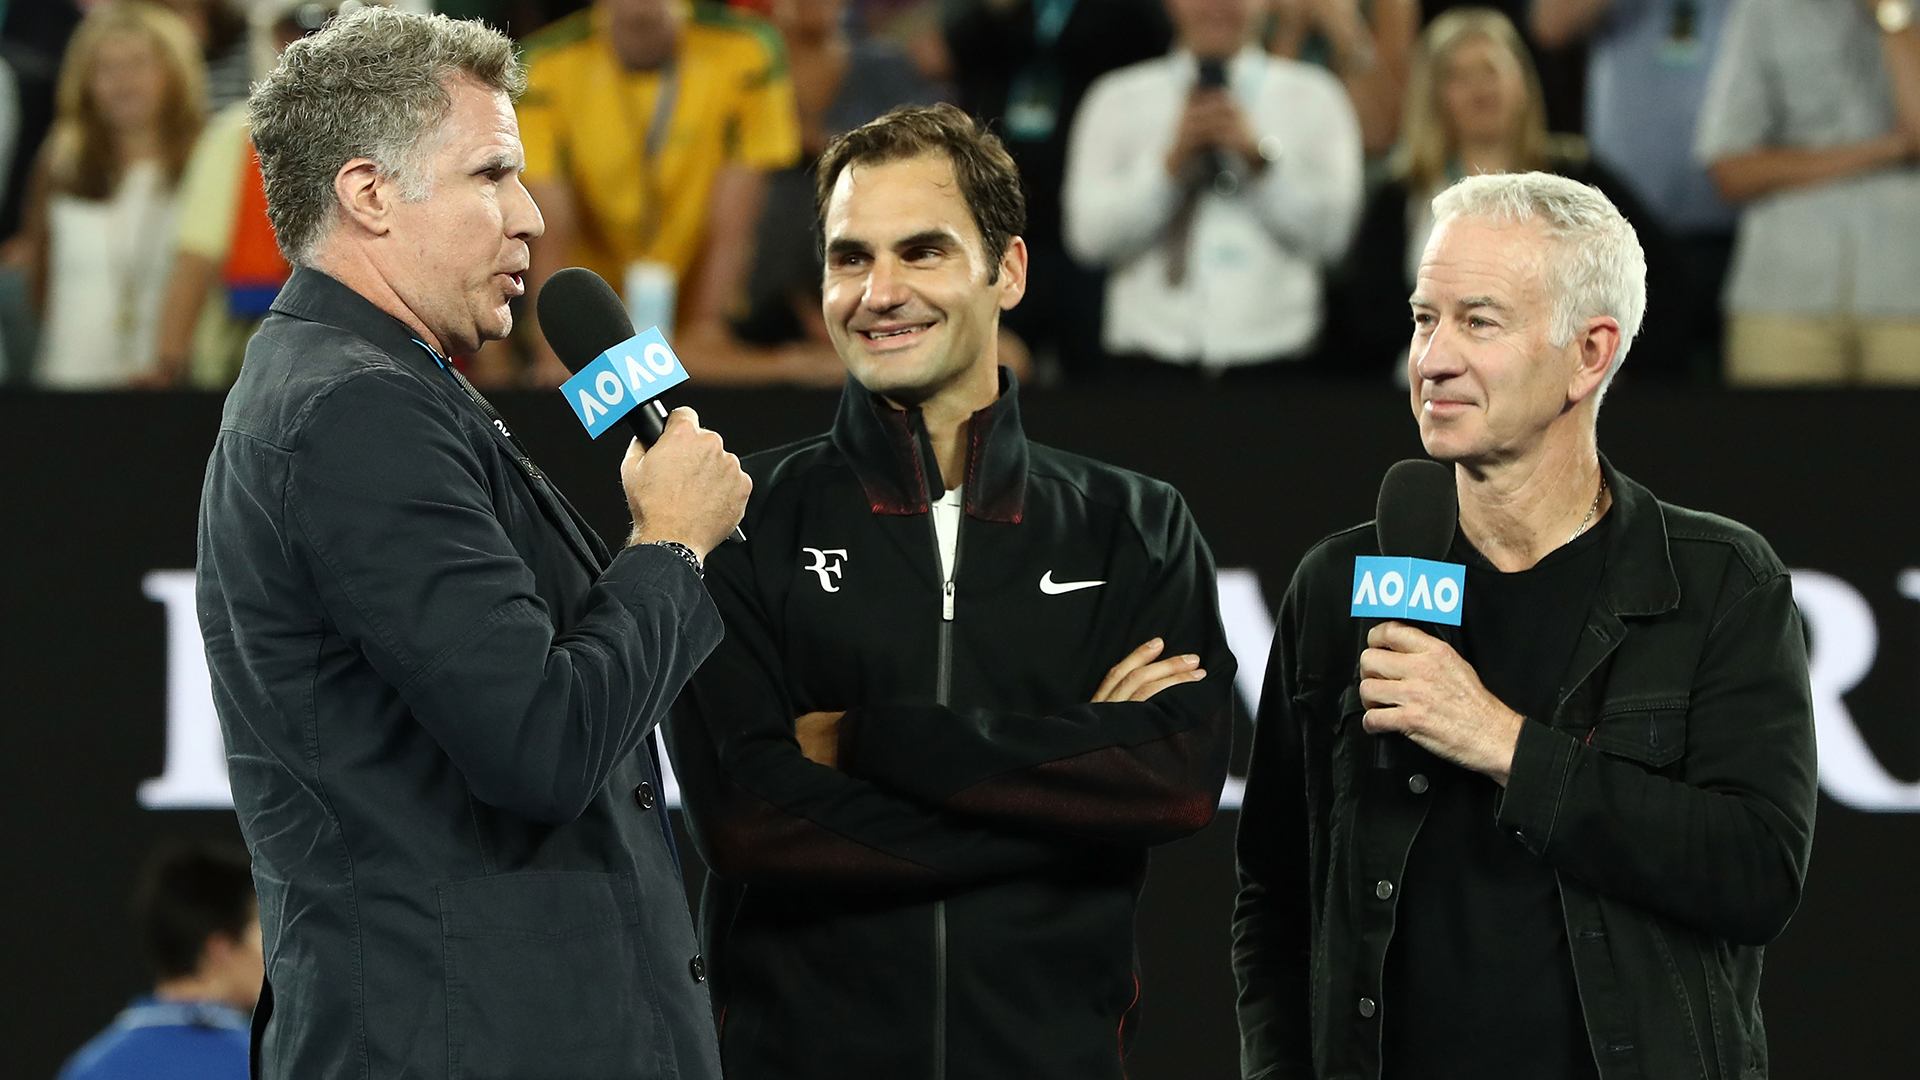 Will Ferrell's freaky interview of Roger Federer